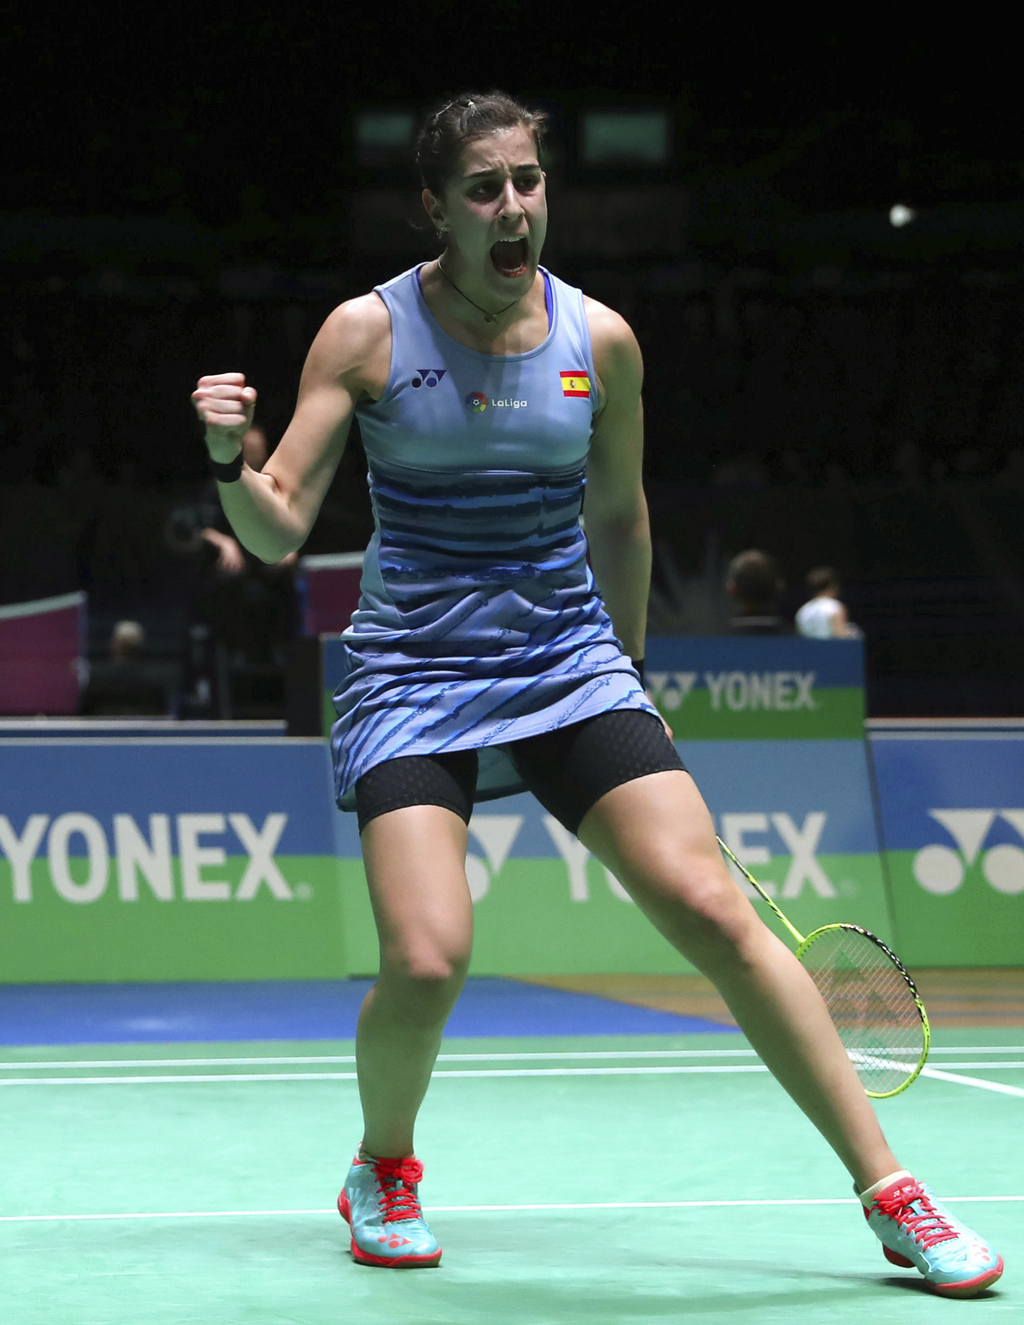 Spain's Carolina Marin celebrates winning her Women's singles match during day two of the All England Open Badminton Championships in B...